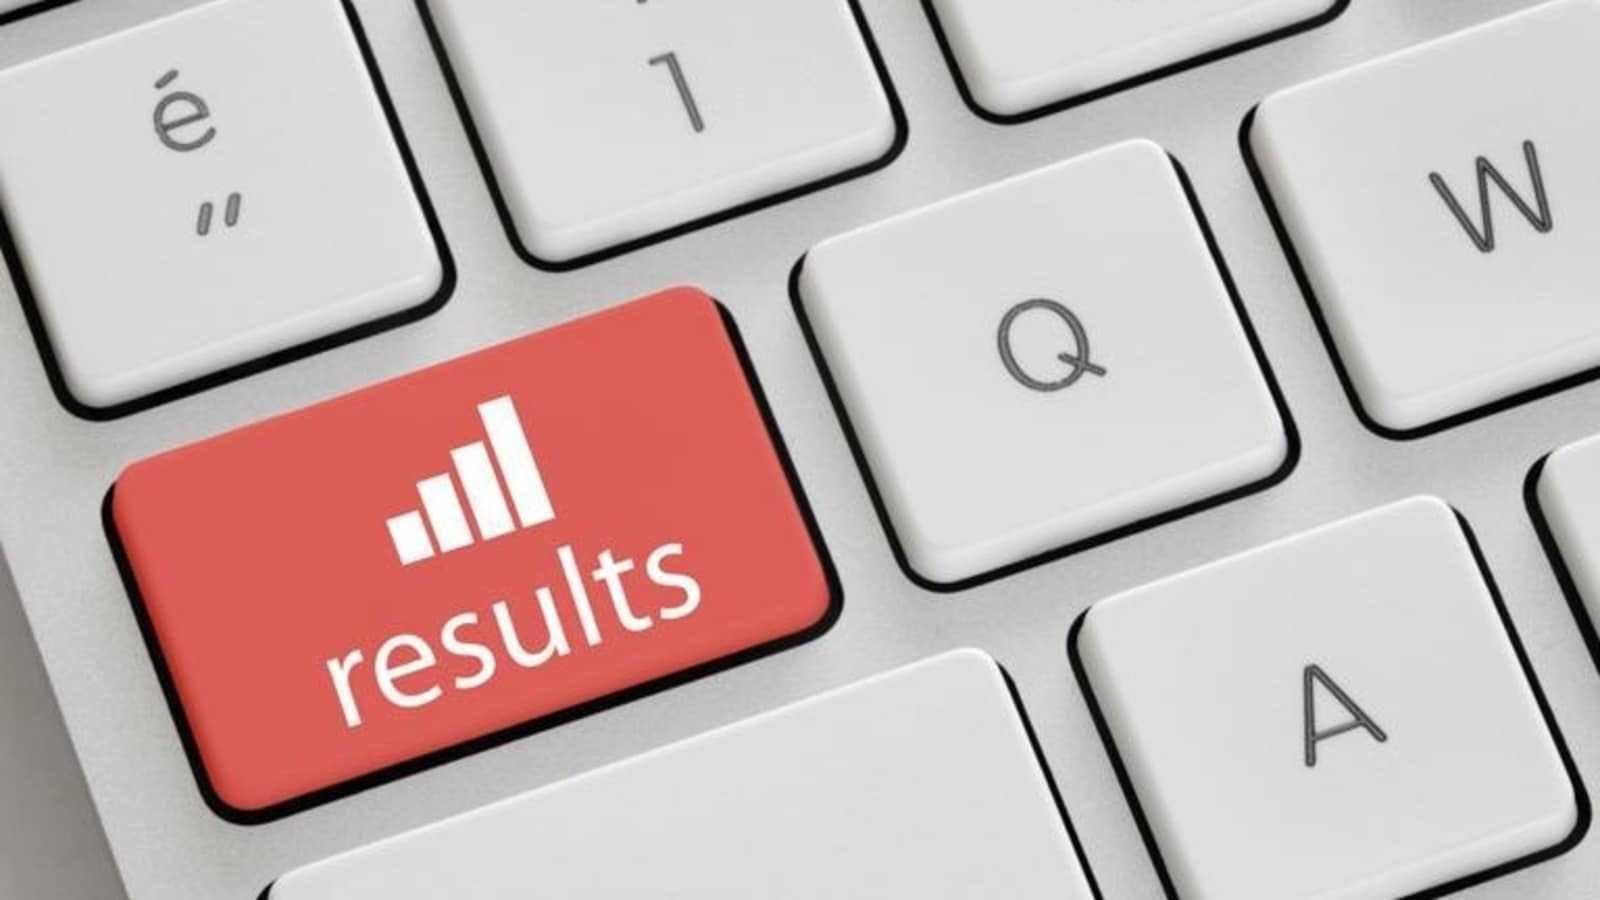 Maharashtra Board class 10 result 2021 on July 16: Know how to check SSC marks